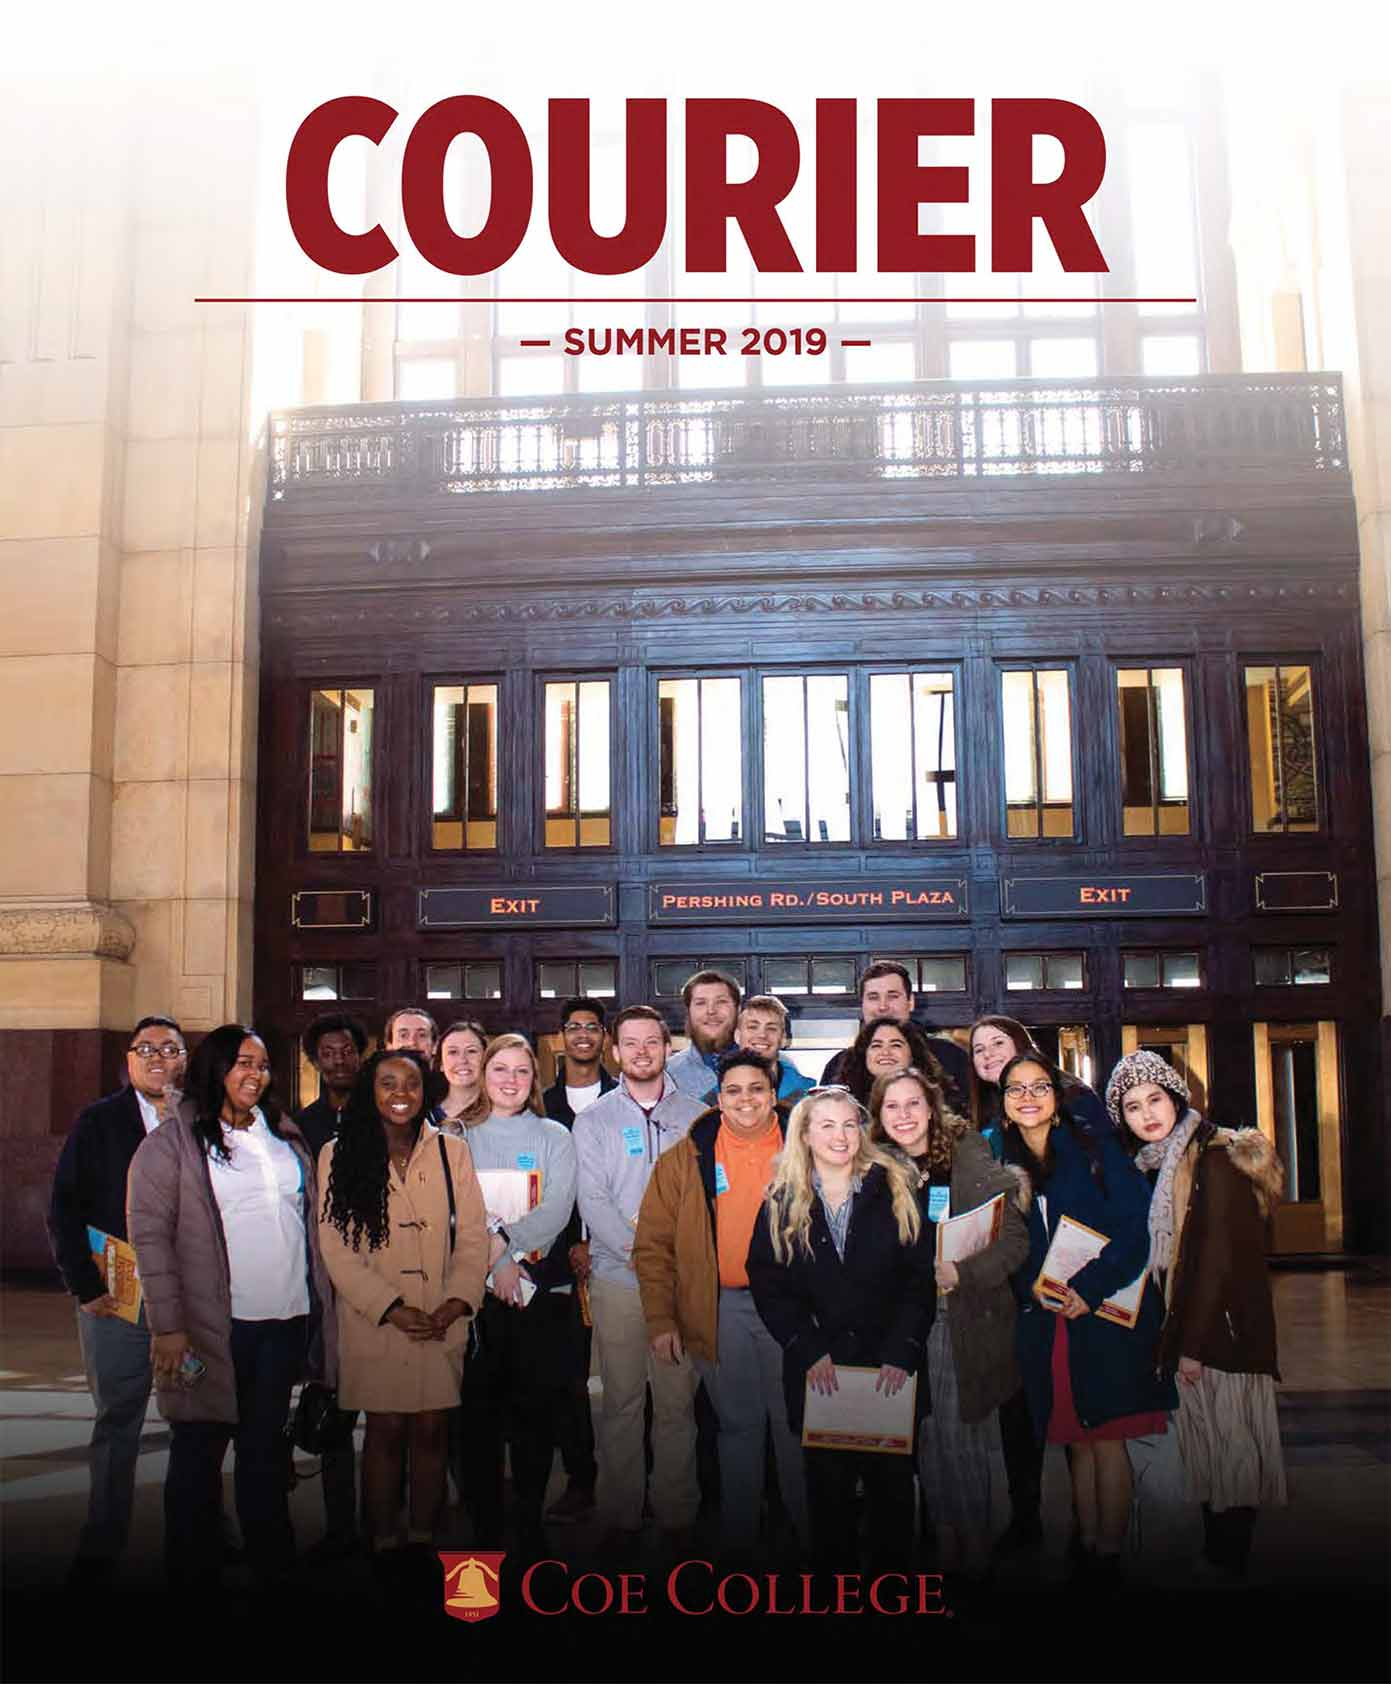 Coe College Courier Summer 2019 cover